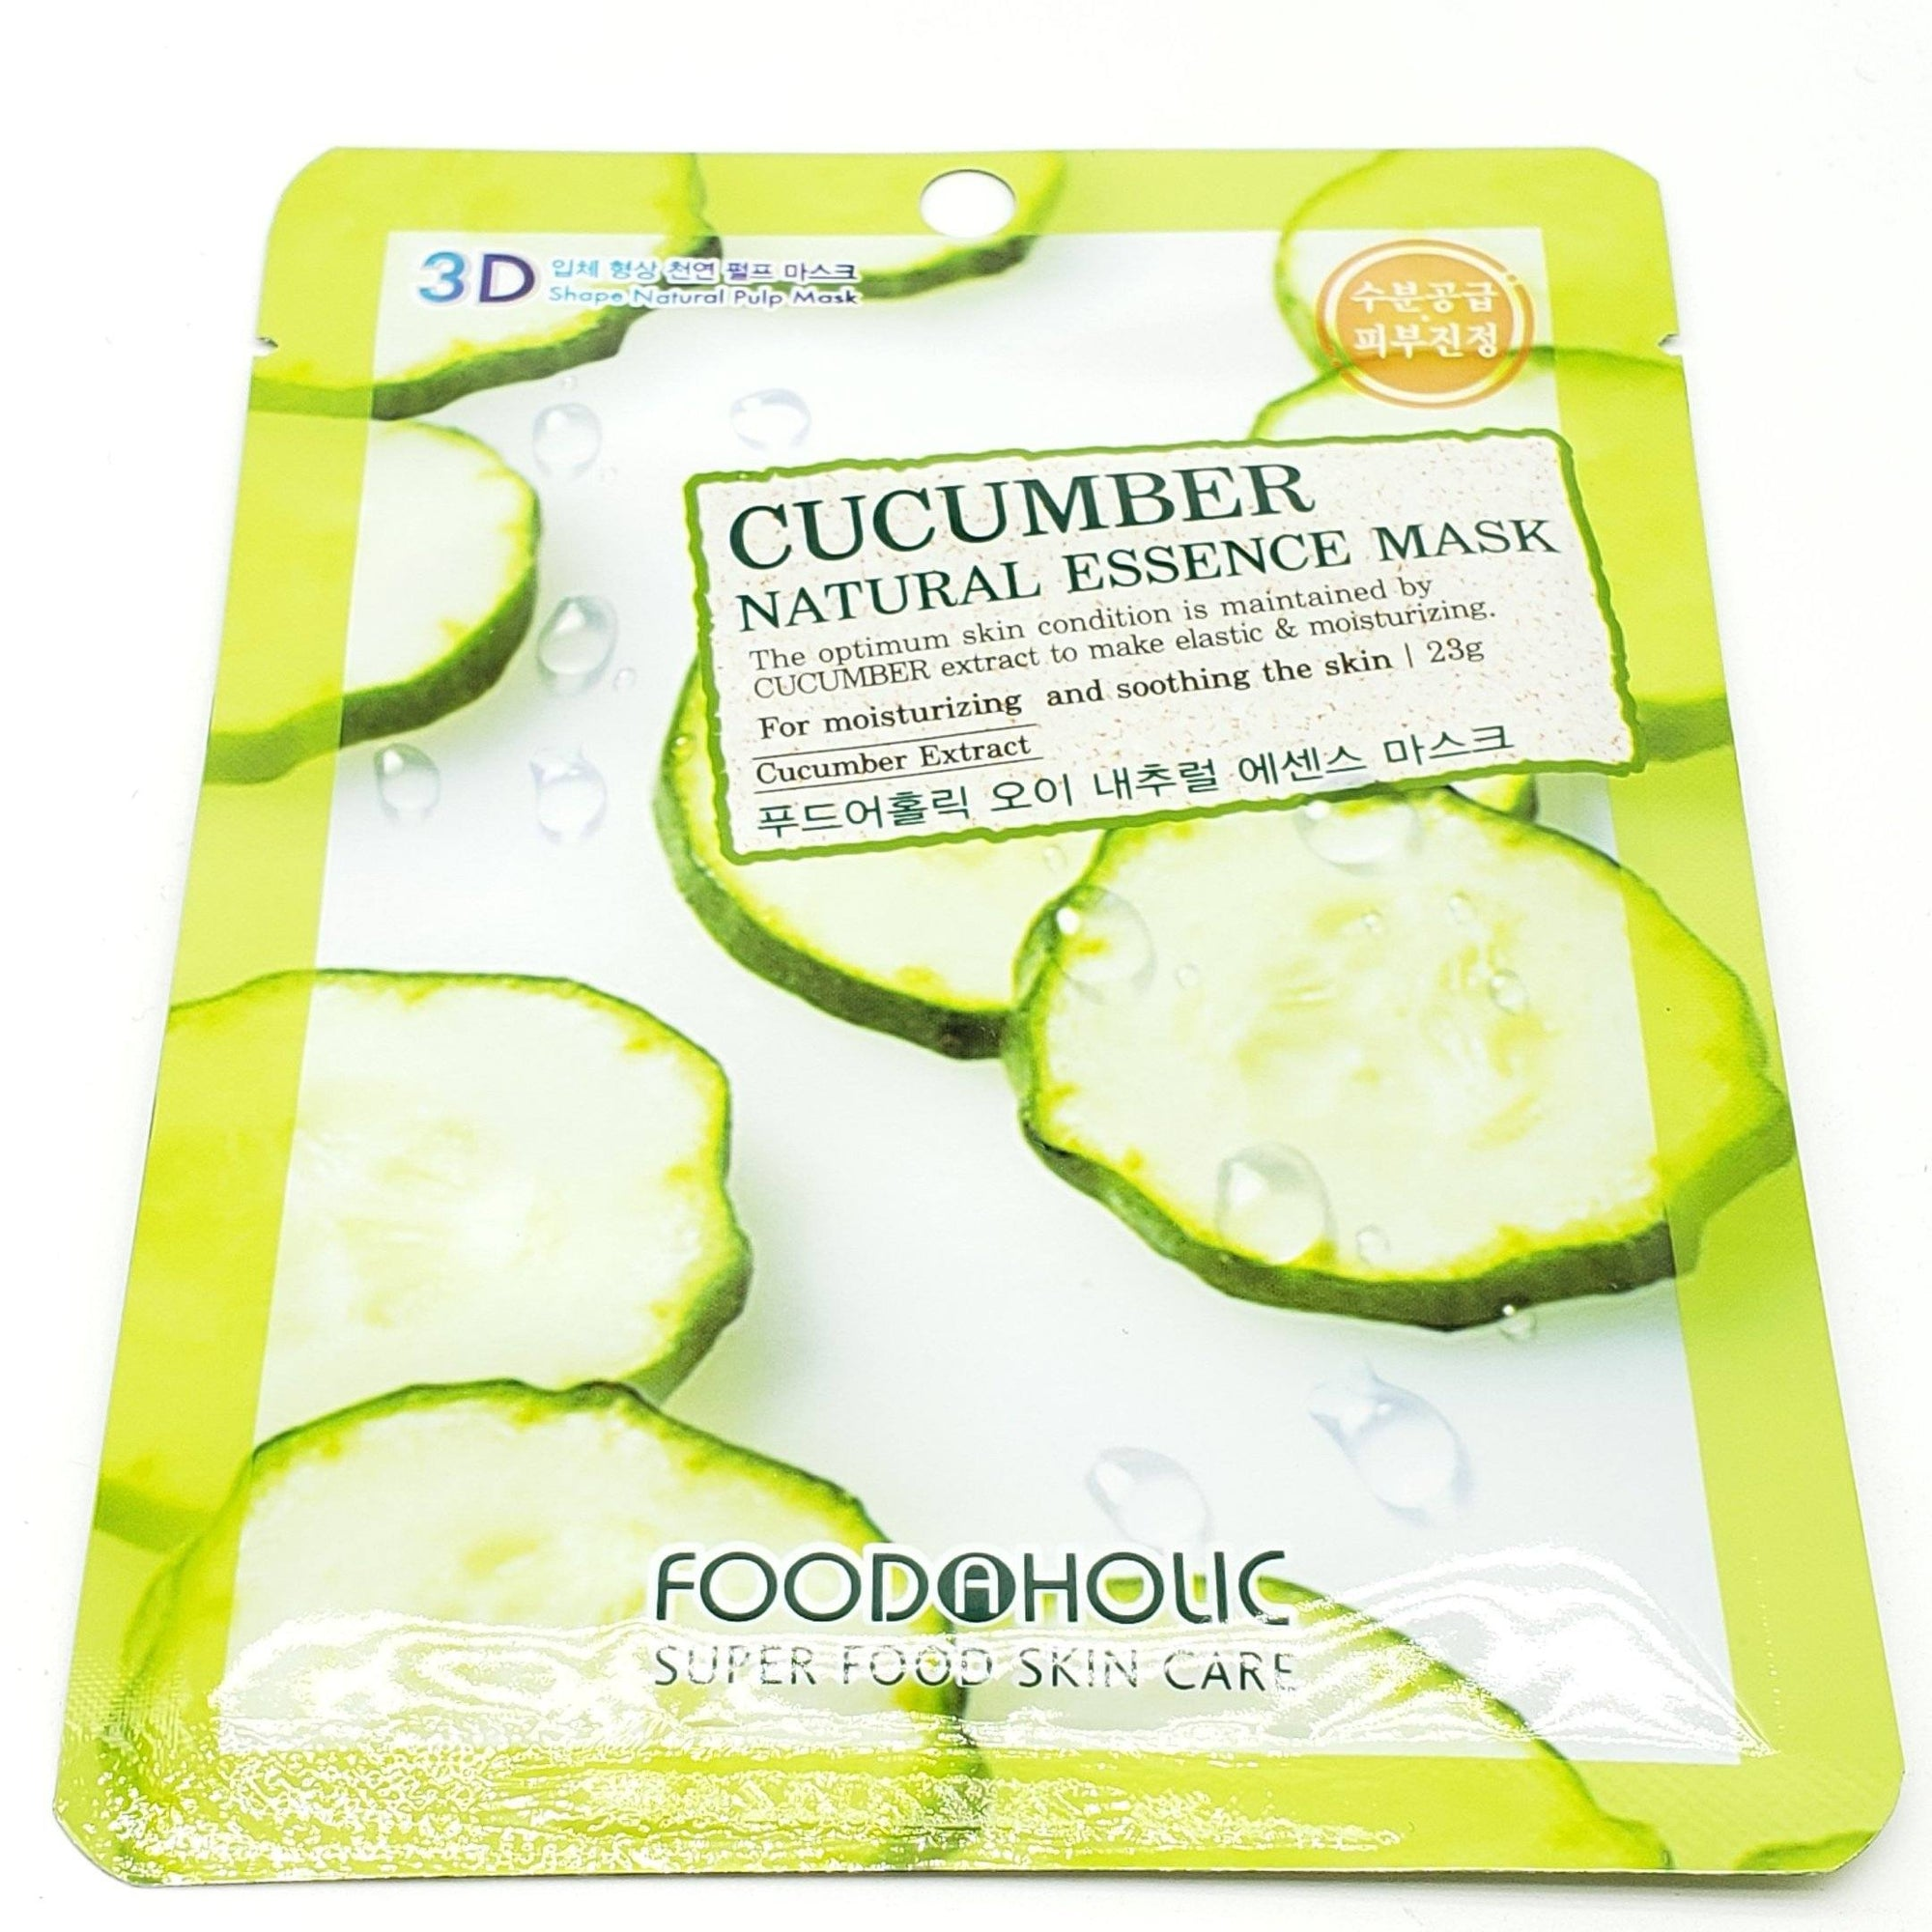 Foodaholic Facial Essence Mask Pack, Cucumber (10PC)